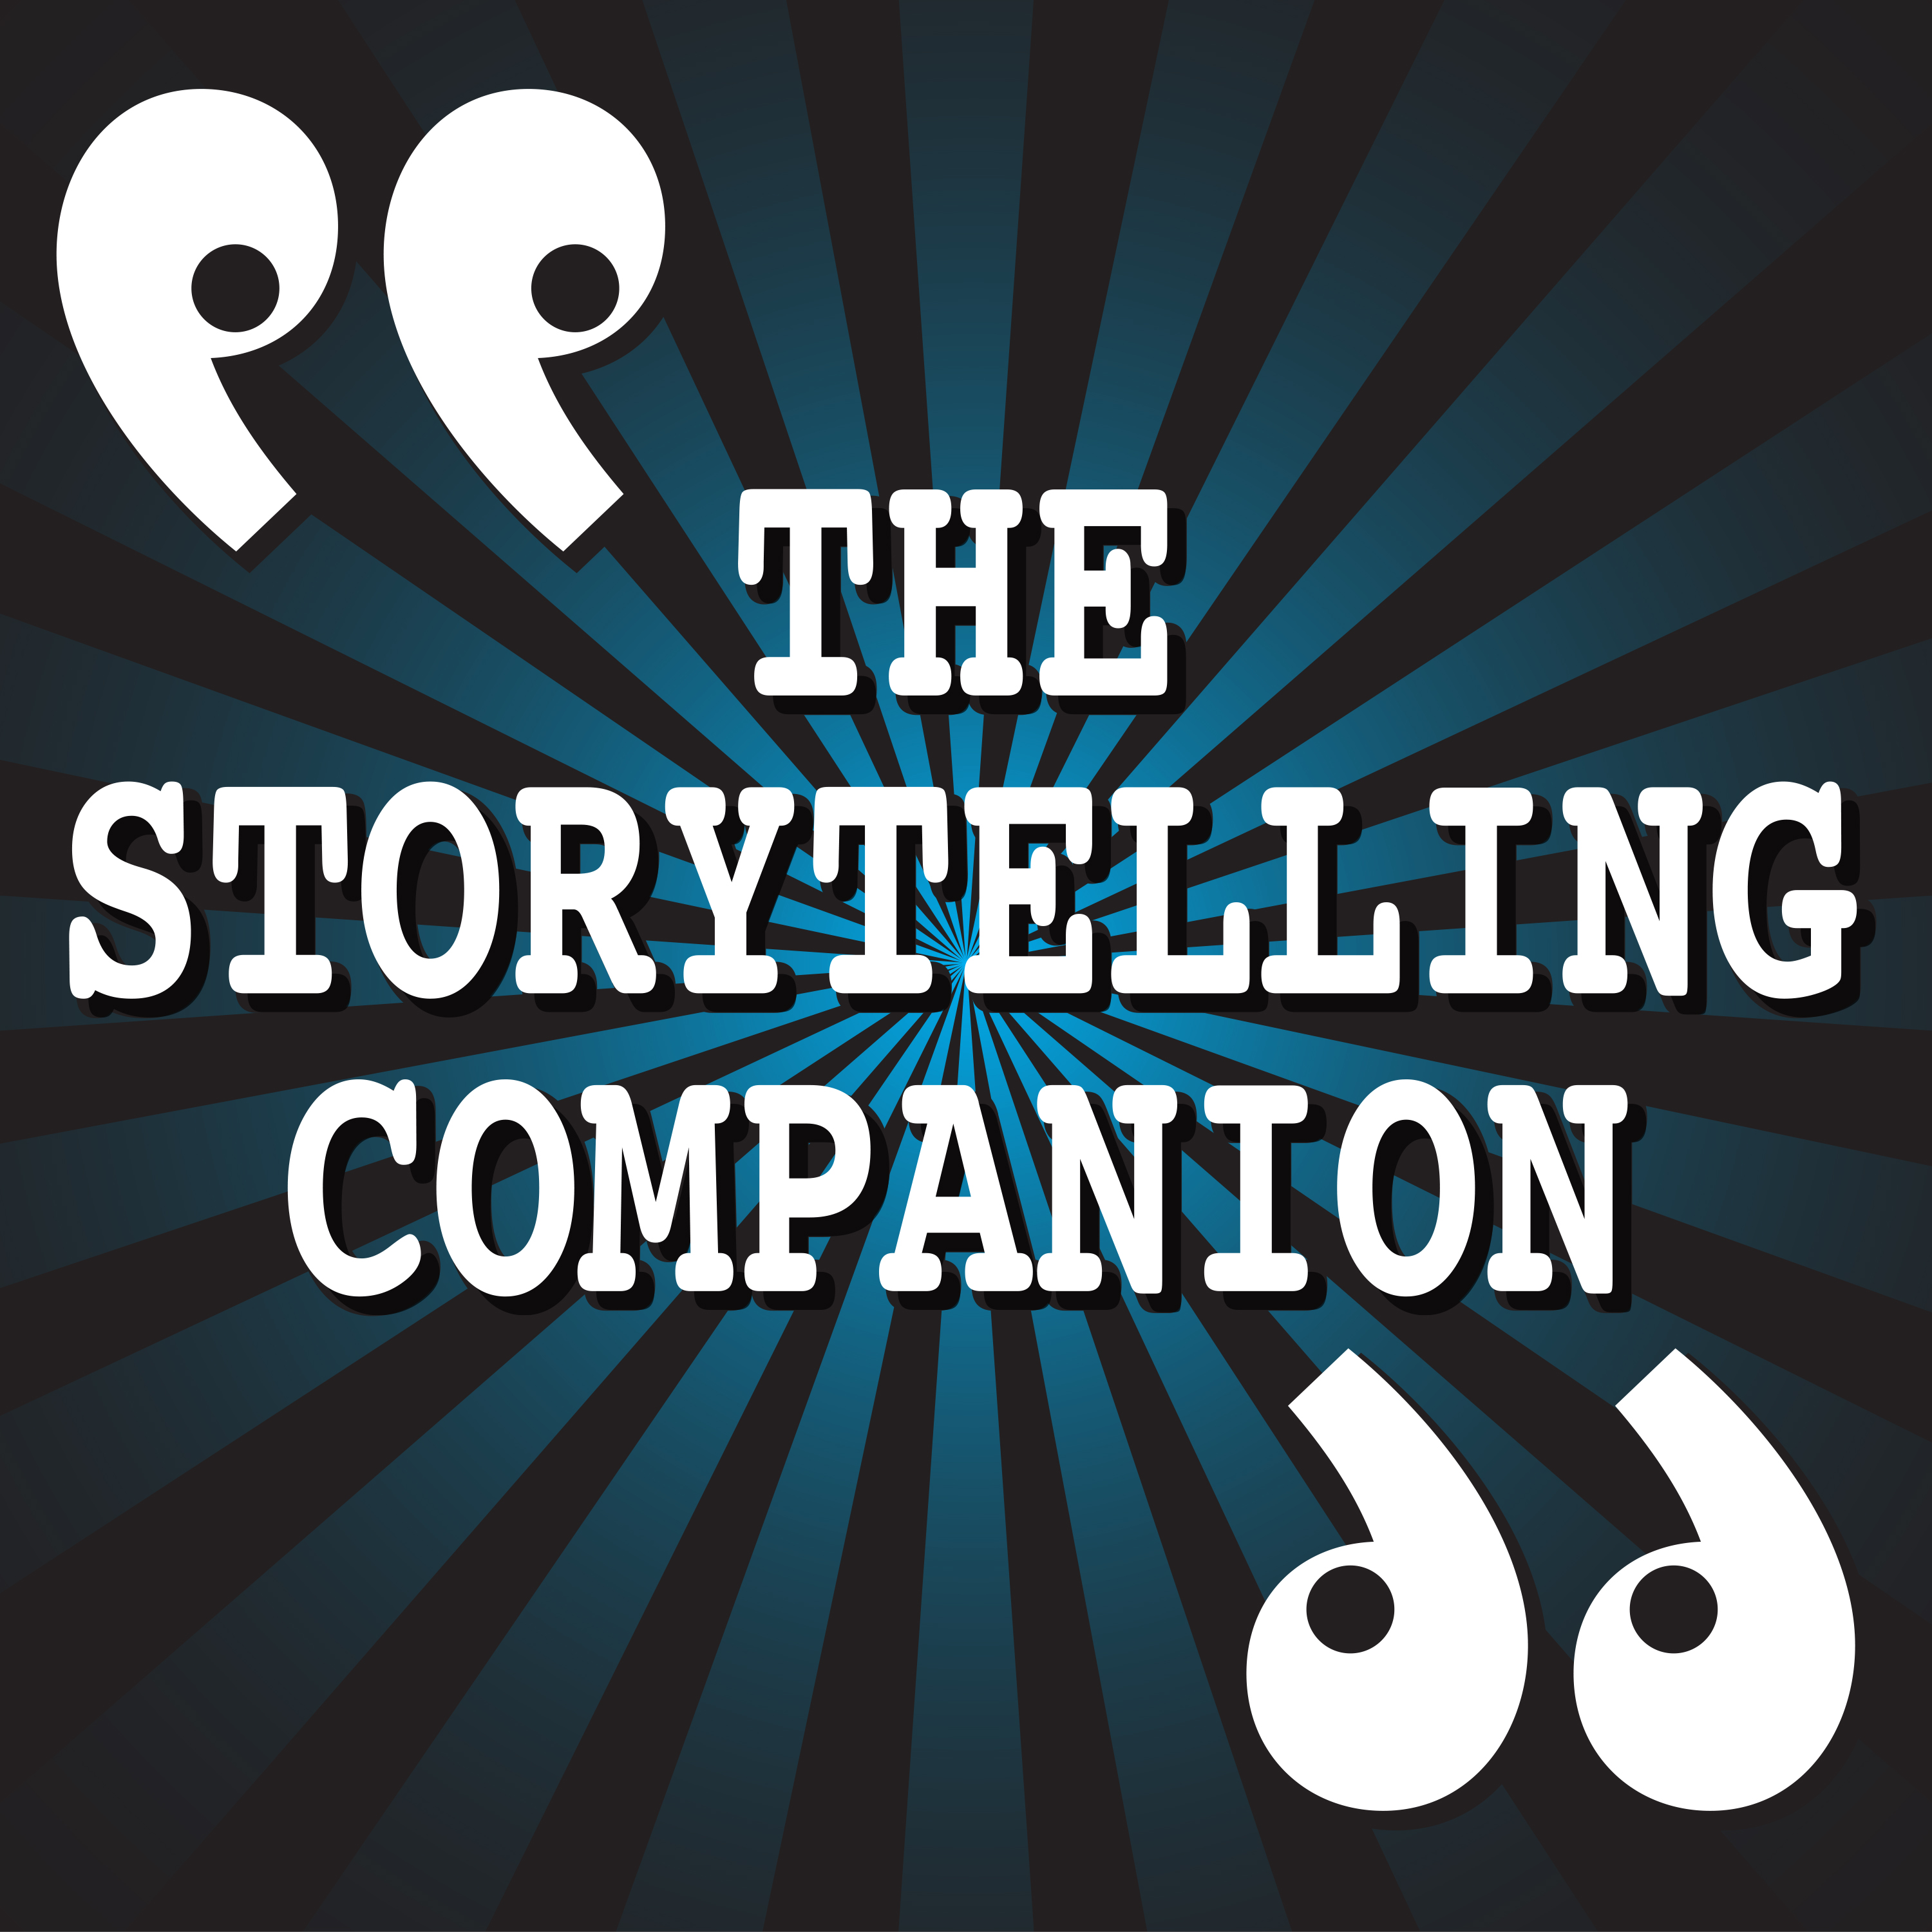 The Storytelling Companion